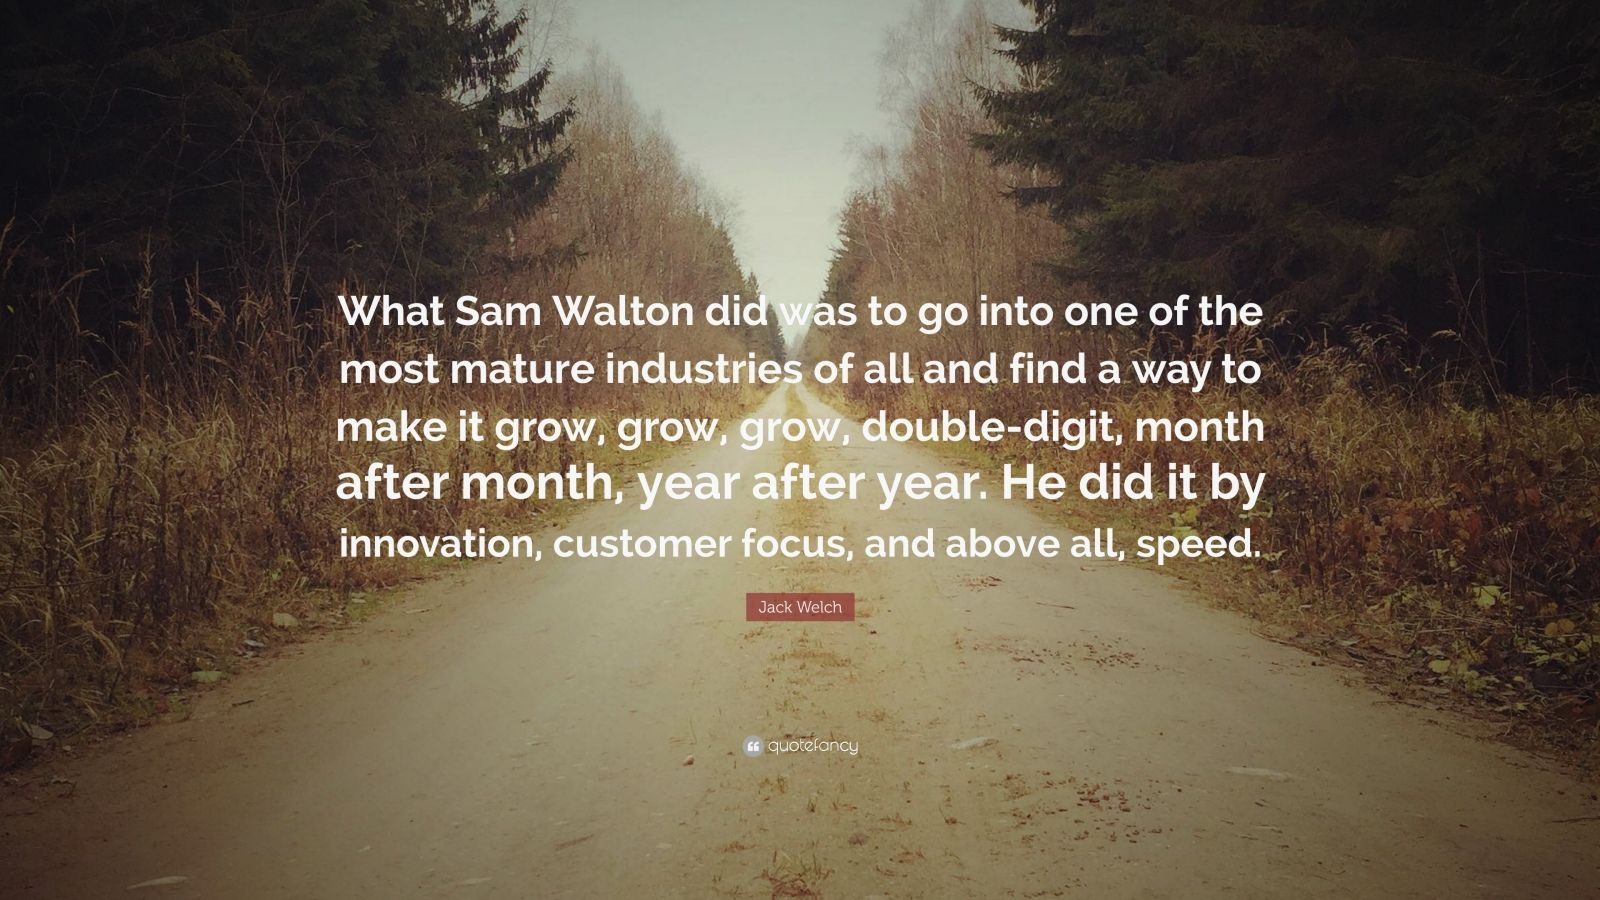 """Jack Welch Quote: """"What Sam Walton did was to go into one of the most mature industries of all and find a way to make it grow, grow, grow, double-digit, month after month, year after year. He did it by innovation, customer focus, and above all, speed."""""""